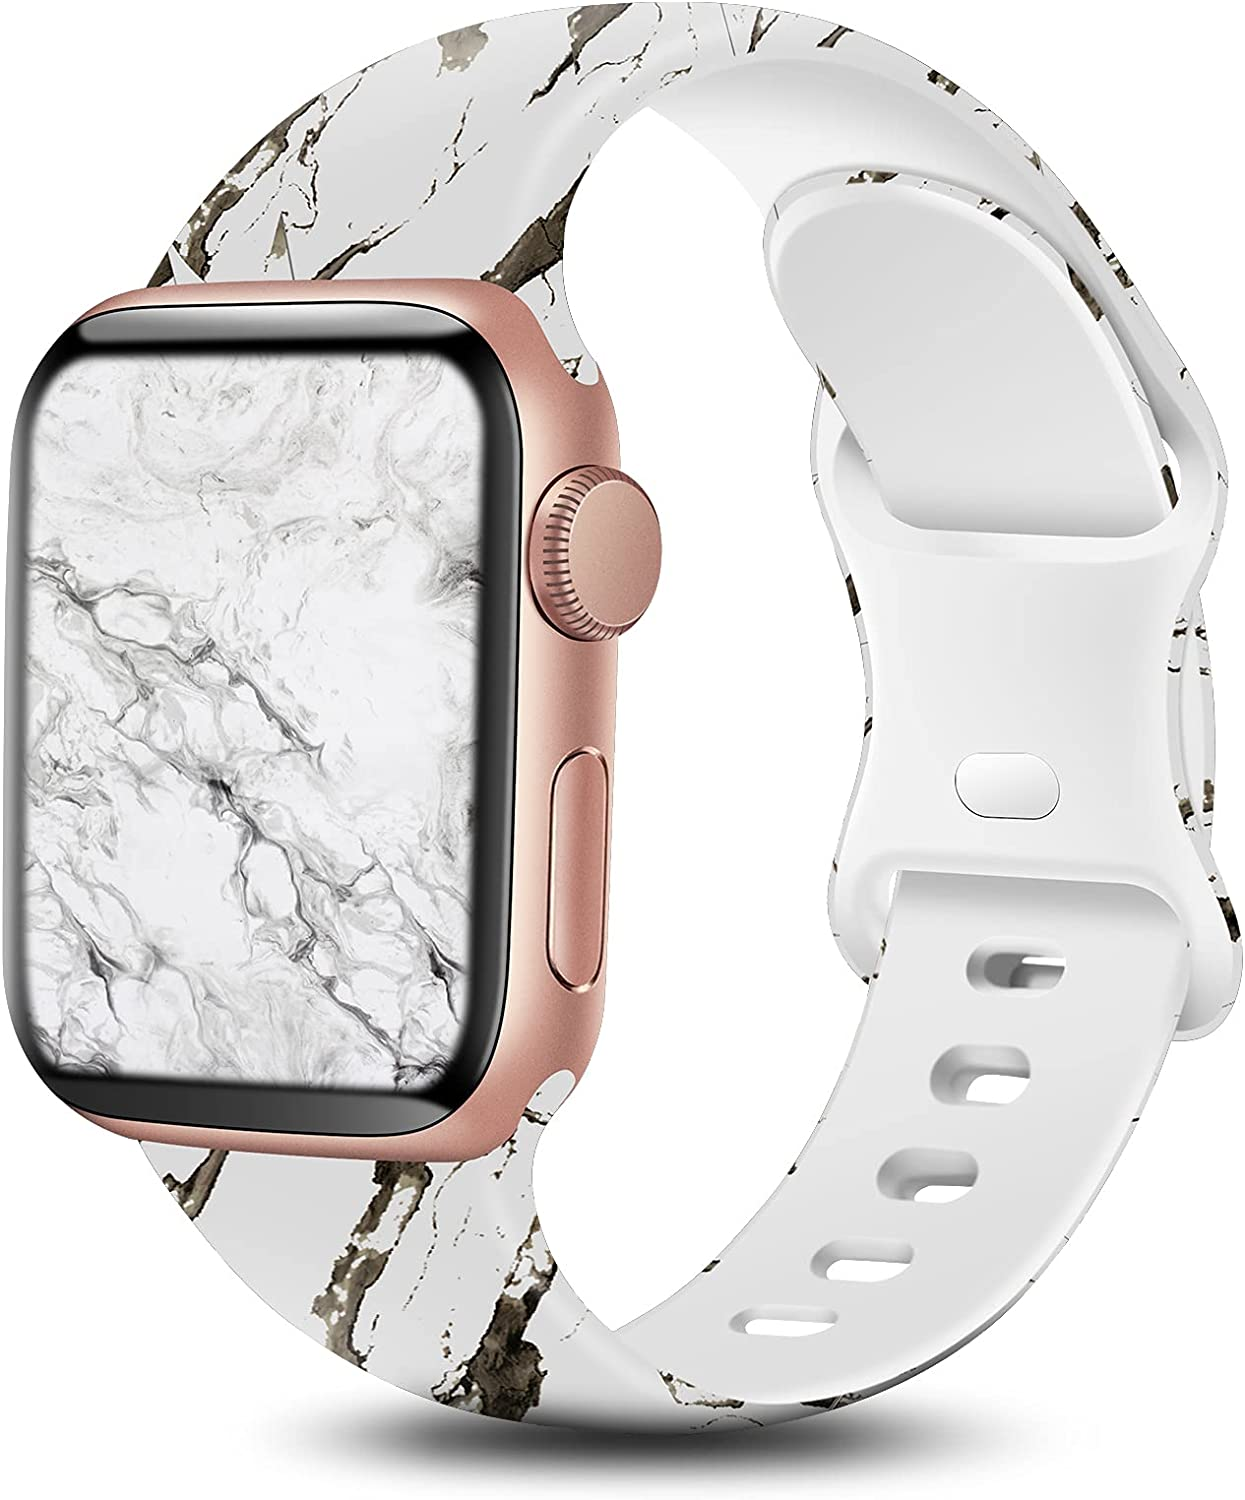 BYH Compatible with Apple Watch Band 38mm 40mm 42mm 44mm for Women Men Cute Fadeless Floral Smartwatch Bands Soft Silicone Sport Strap Wristband for iWatch Series 6 5 4 3 2 1 SE Multi Printing Pattern